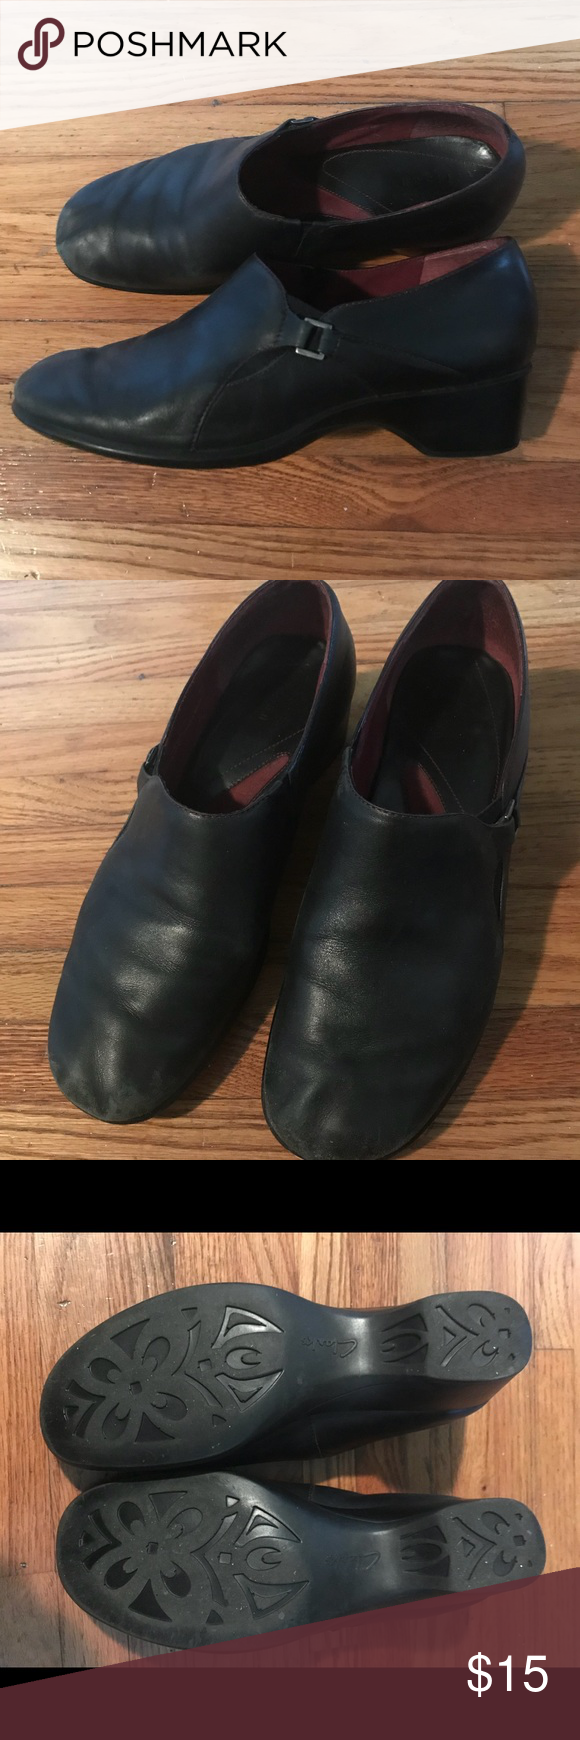 79bc788b6e3 Women s Clark s shoes Black womens Clarks 9M shoes. Some wear noted in toe  area but otherwise good condition Clarks Shoes Heels